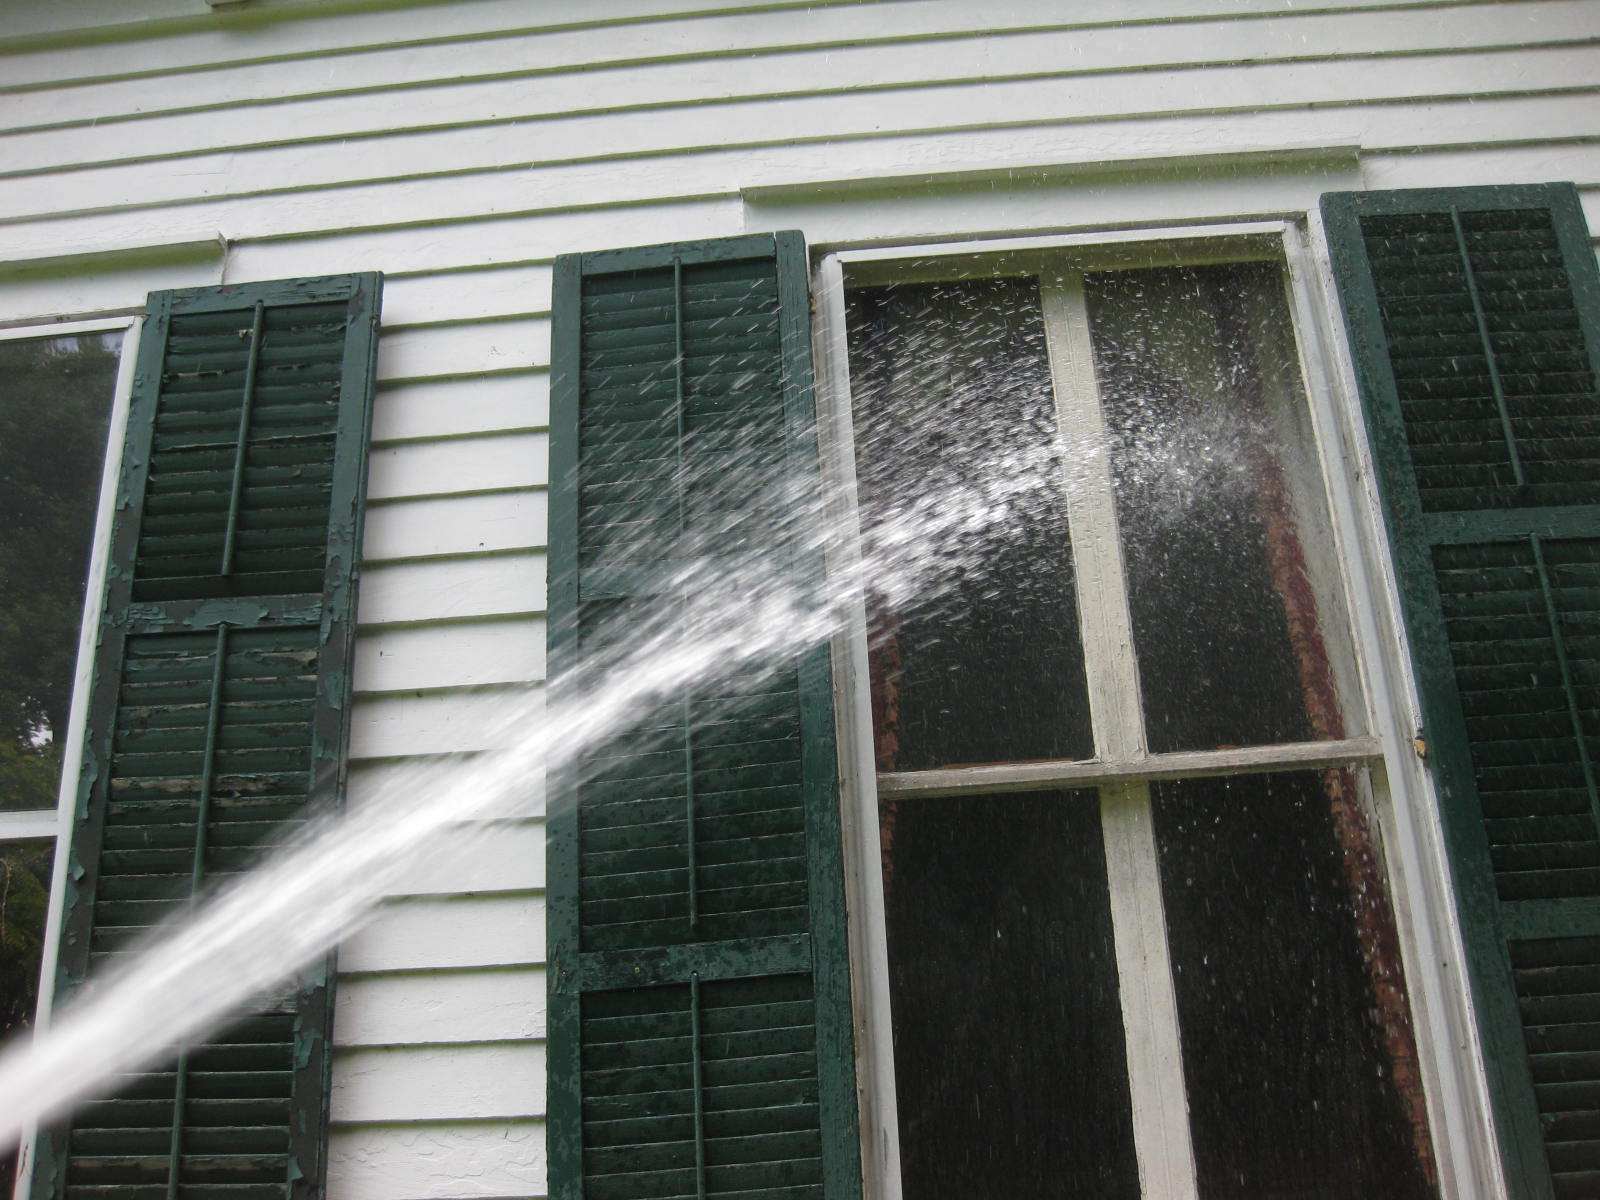 Using Garden Hose Spray Nozzle Attached Give Each Window